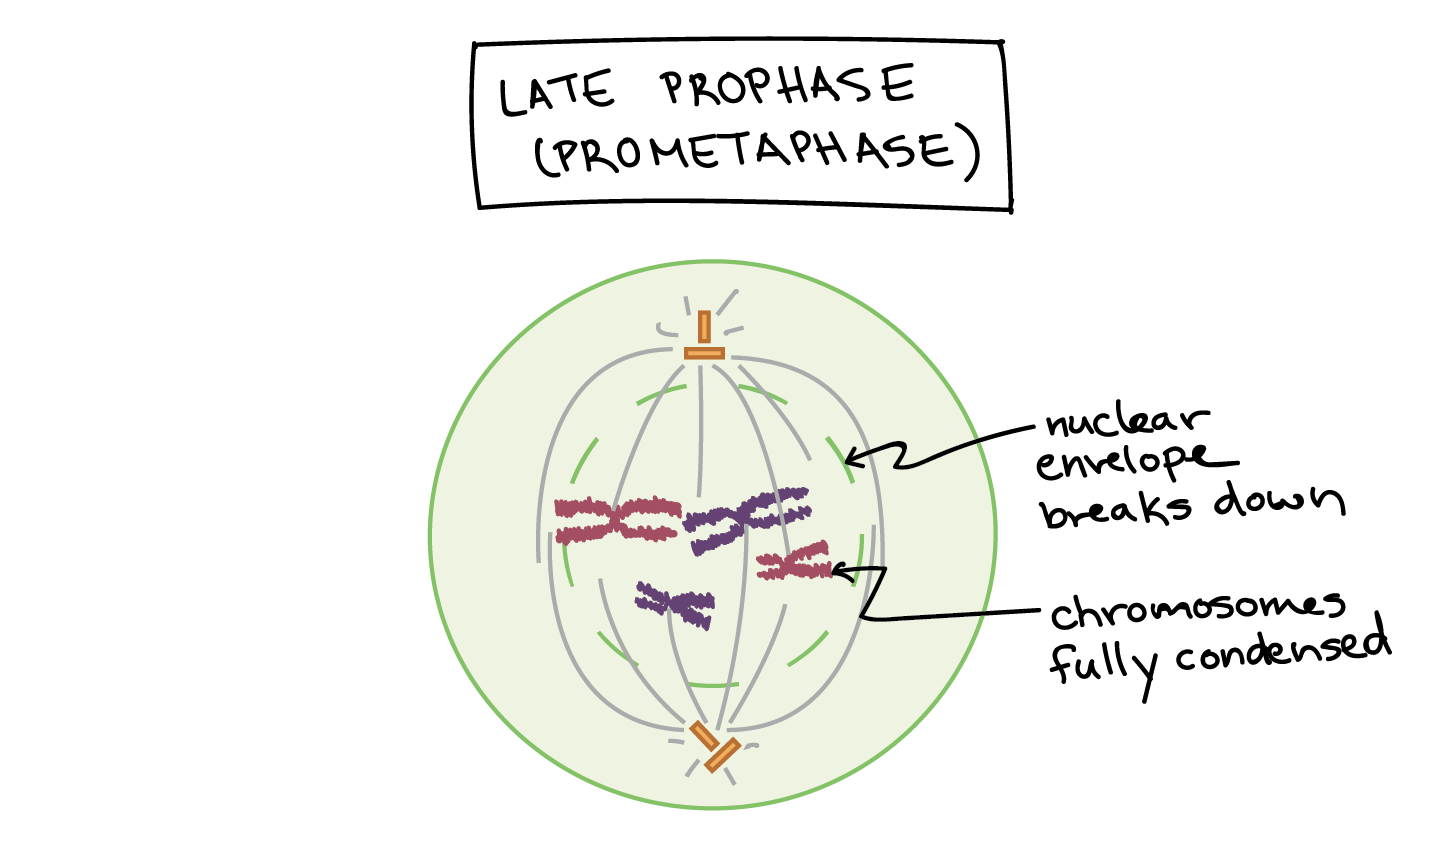 Late Prophase in mitosis